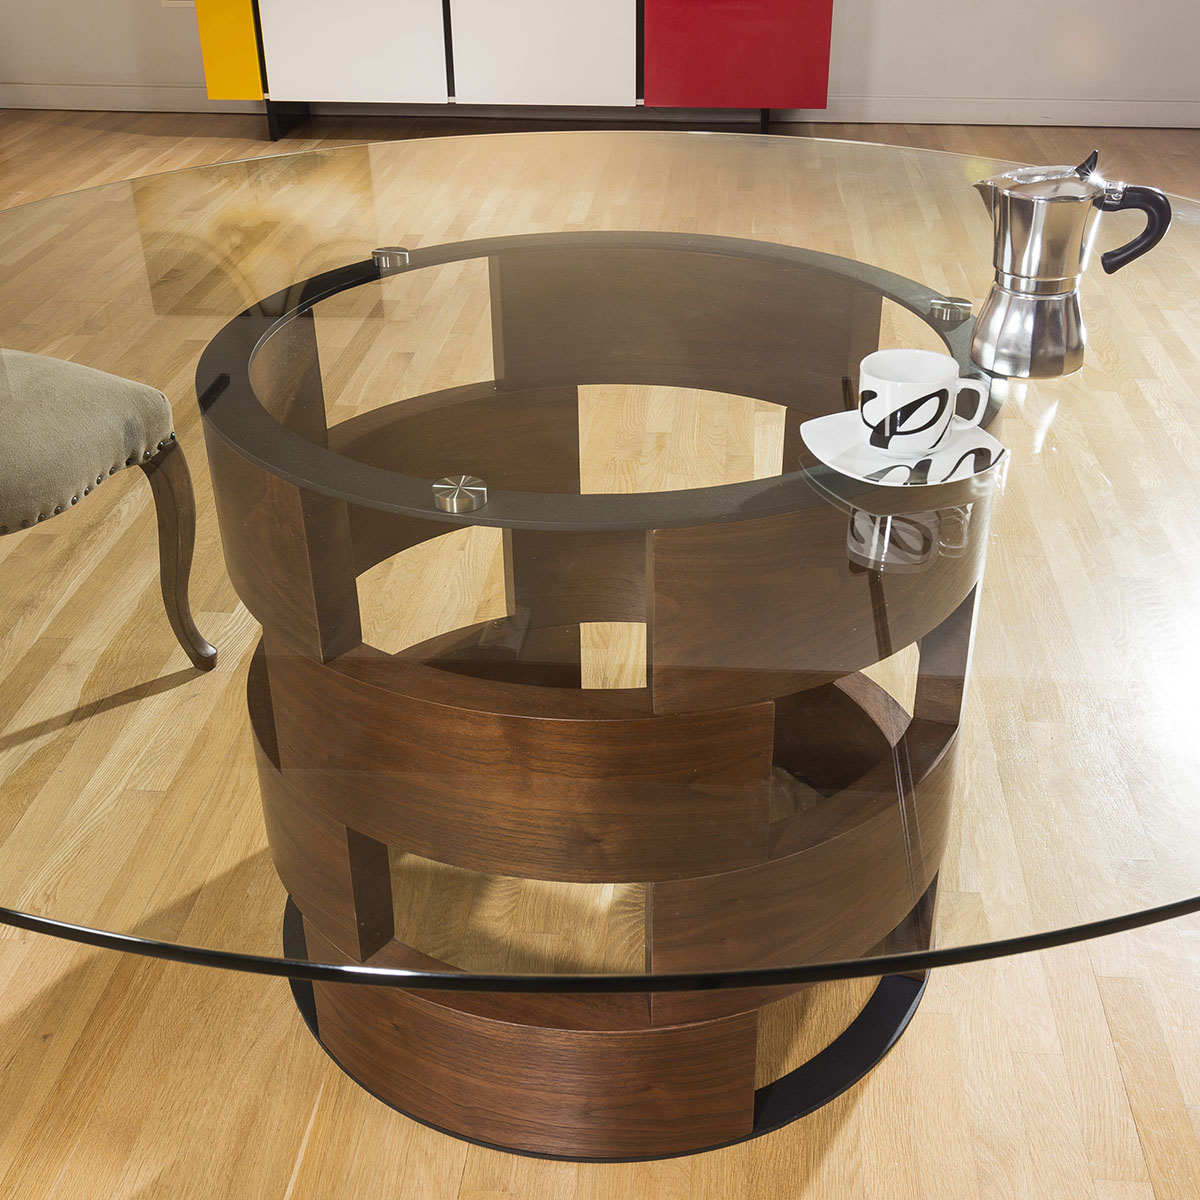 bd43e0667ea3e Sentinel Modern Funky Large Round Walnut and Clear Glass Dining Table 1800mm